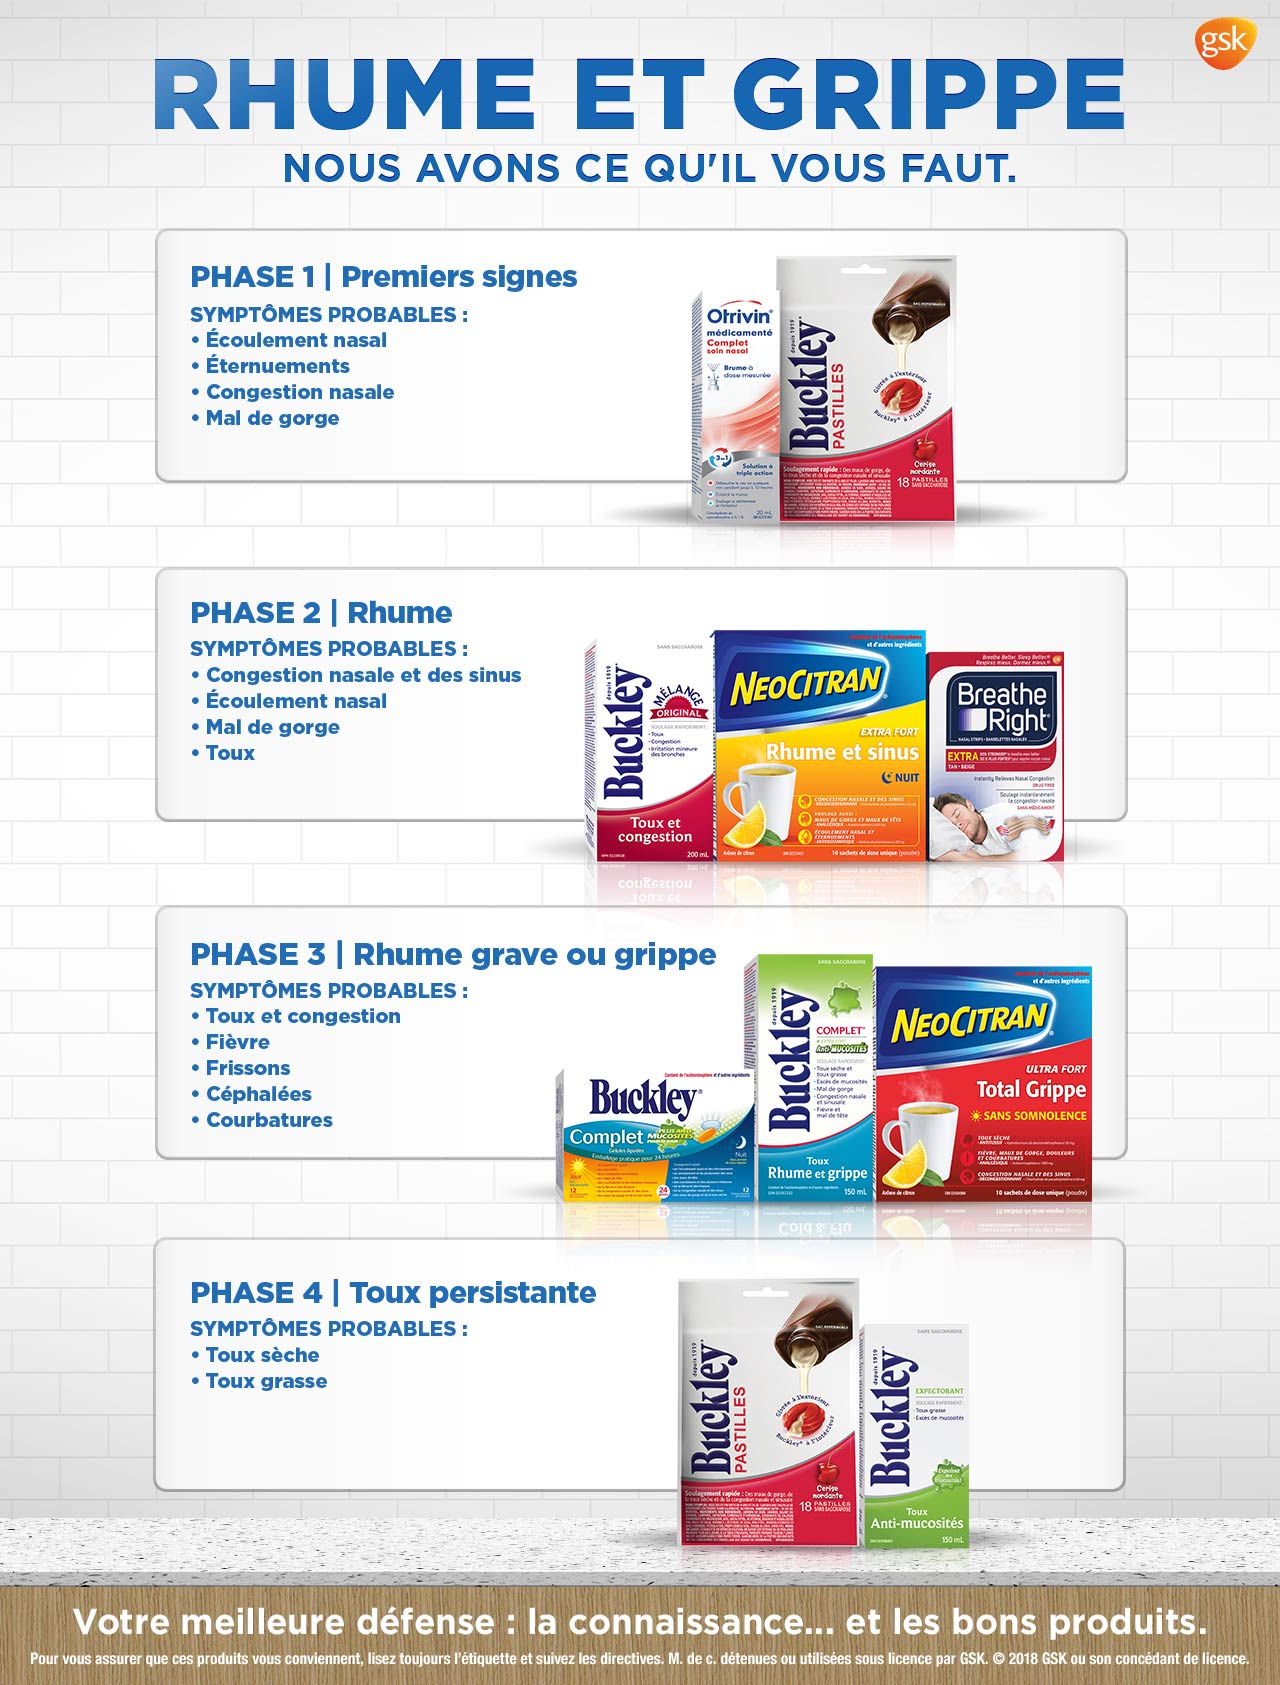 To be sure these products are right for you, always read and follow the label.  †Abreva is indicated for the treatment of cold sores.; Get 4,000 bonus points* when you buy any two participating GSK products.